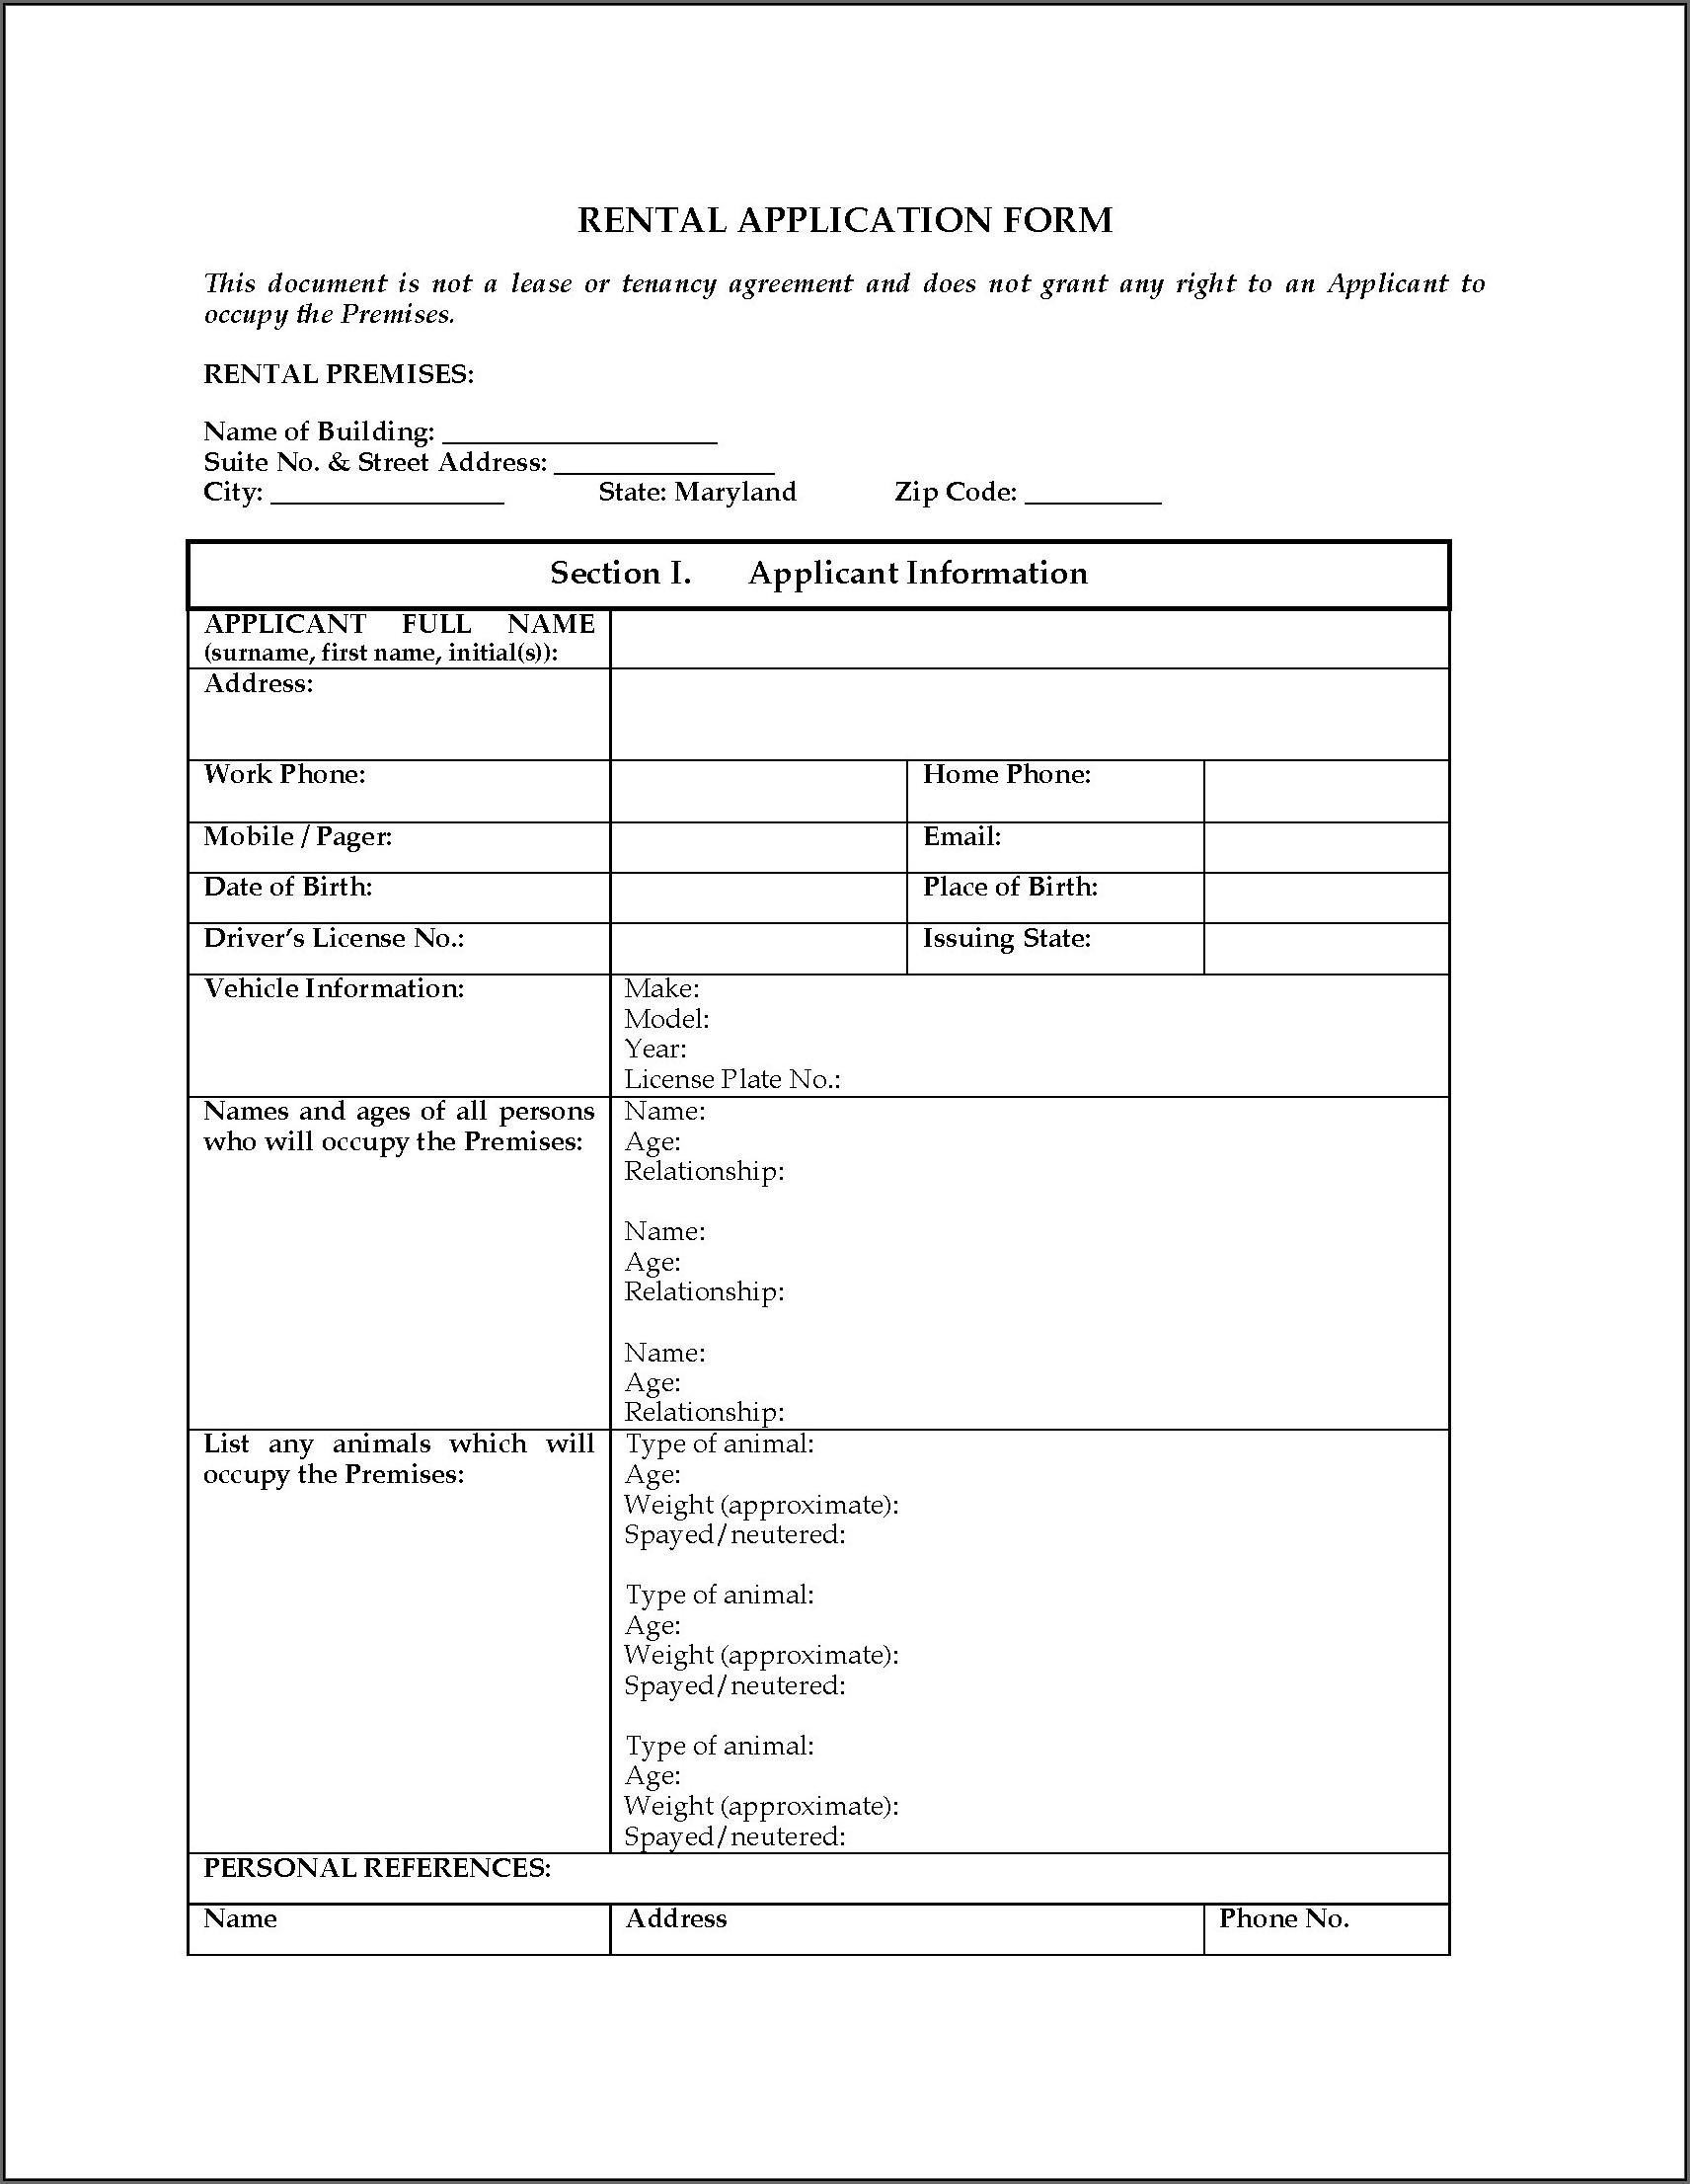 Maryland Rental Application Form